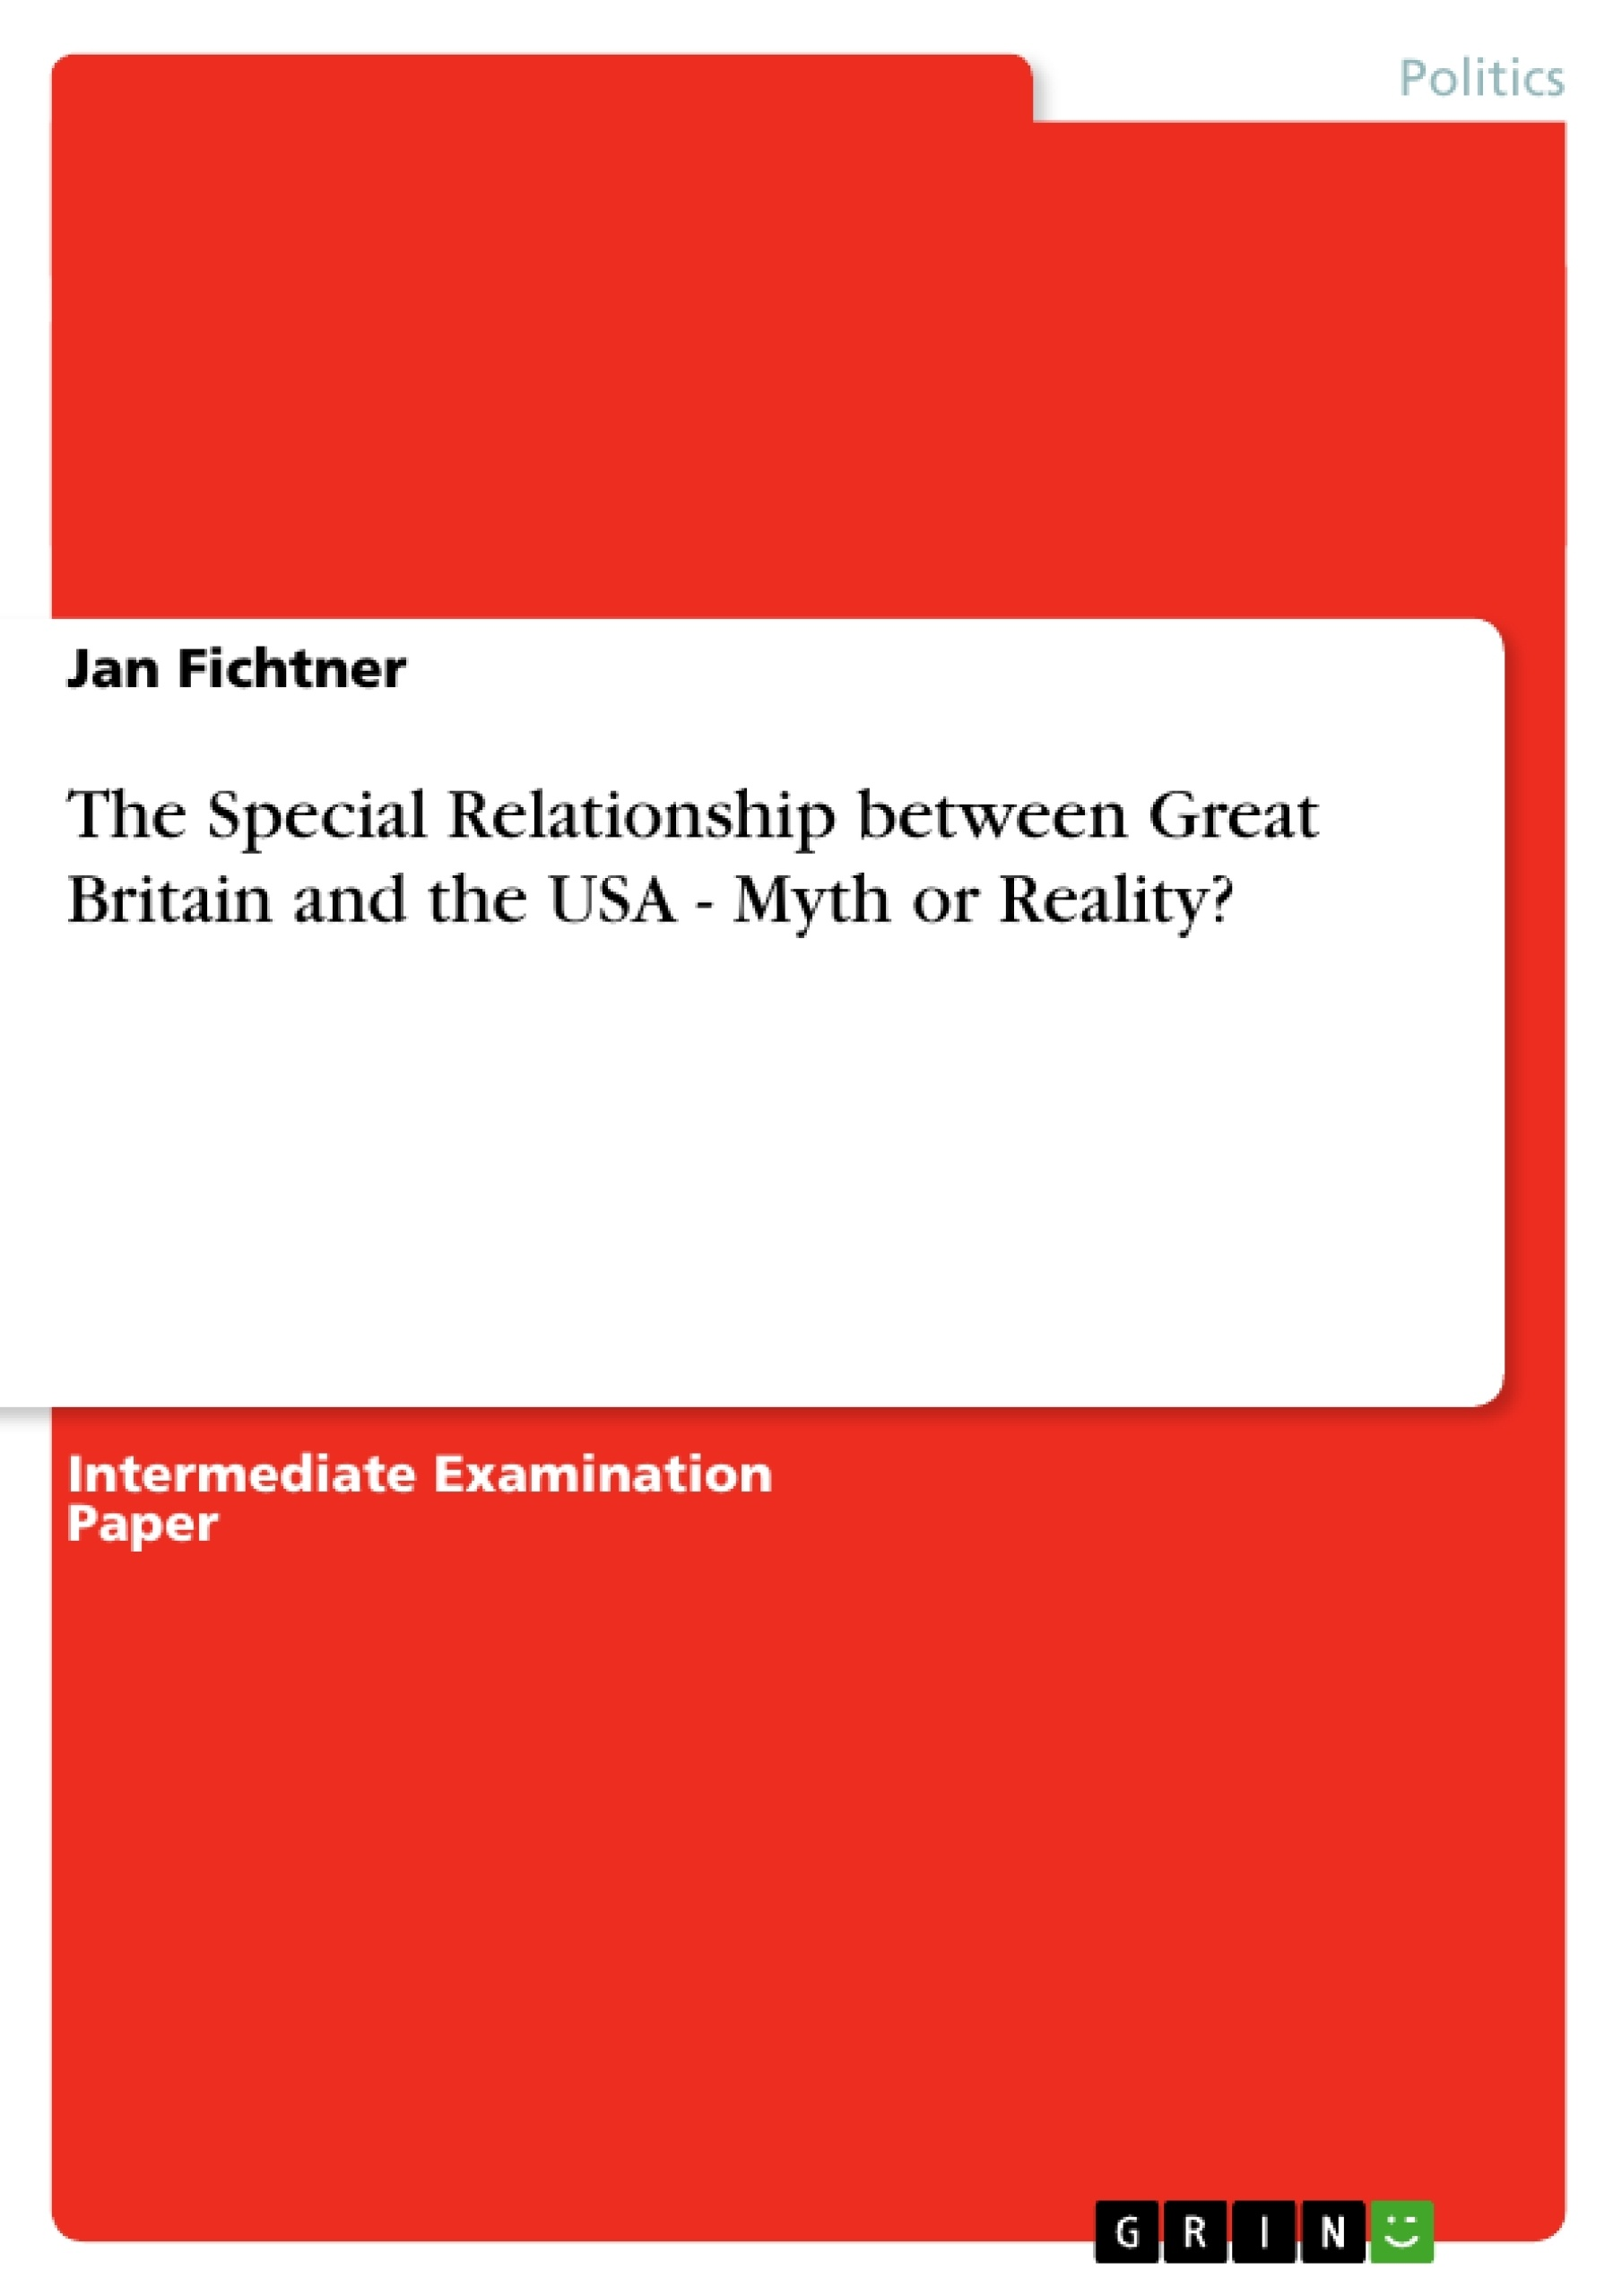 Title: The Special Relationship between Great Britain and the USA - Myth or Reality?